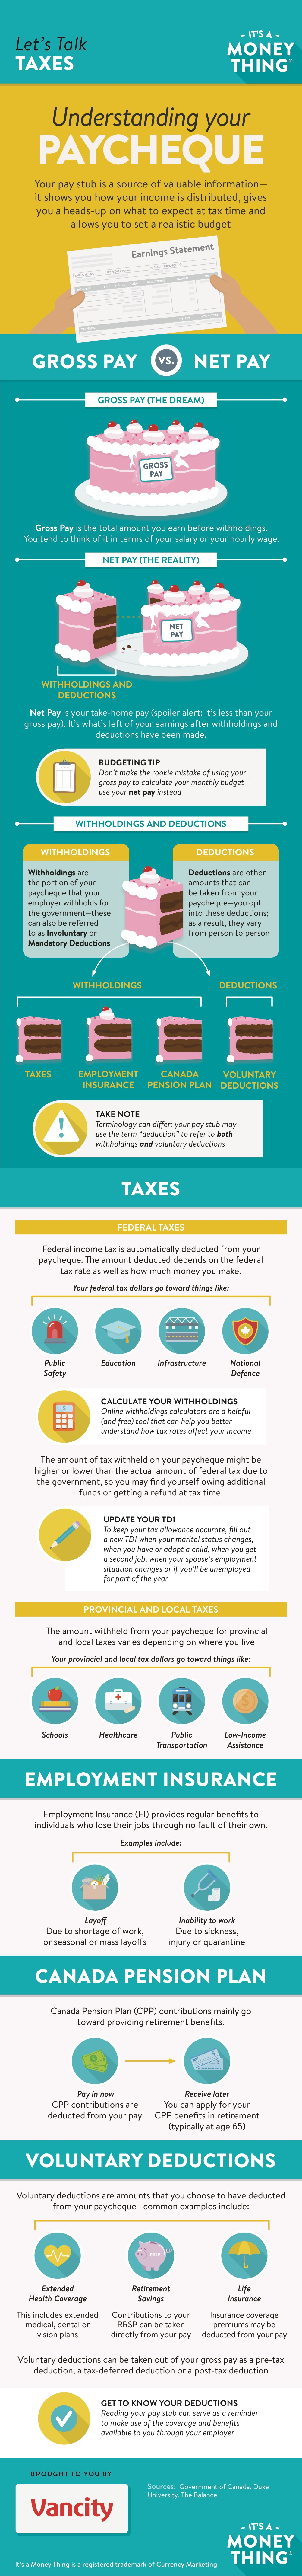 Infographic Understanding your paycheque